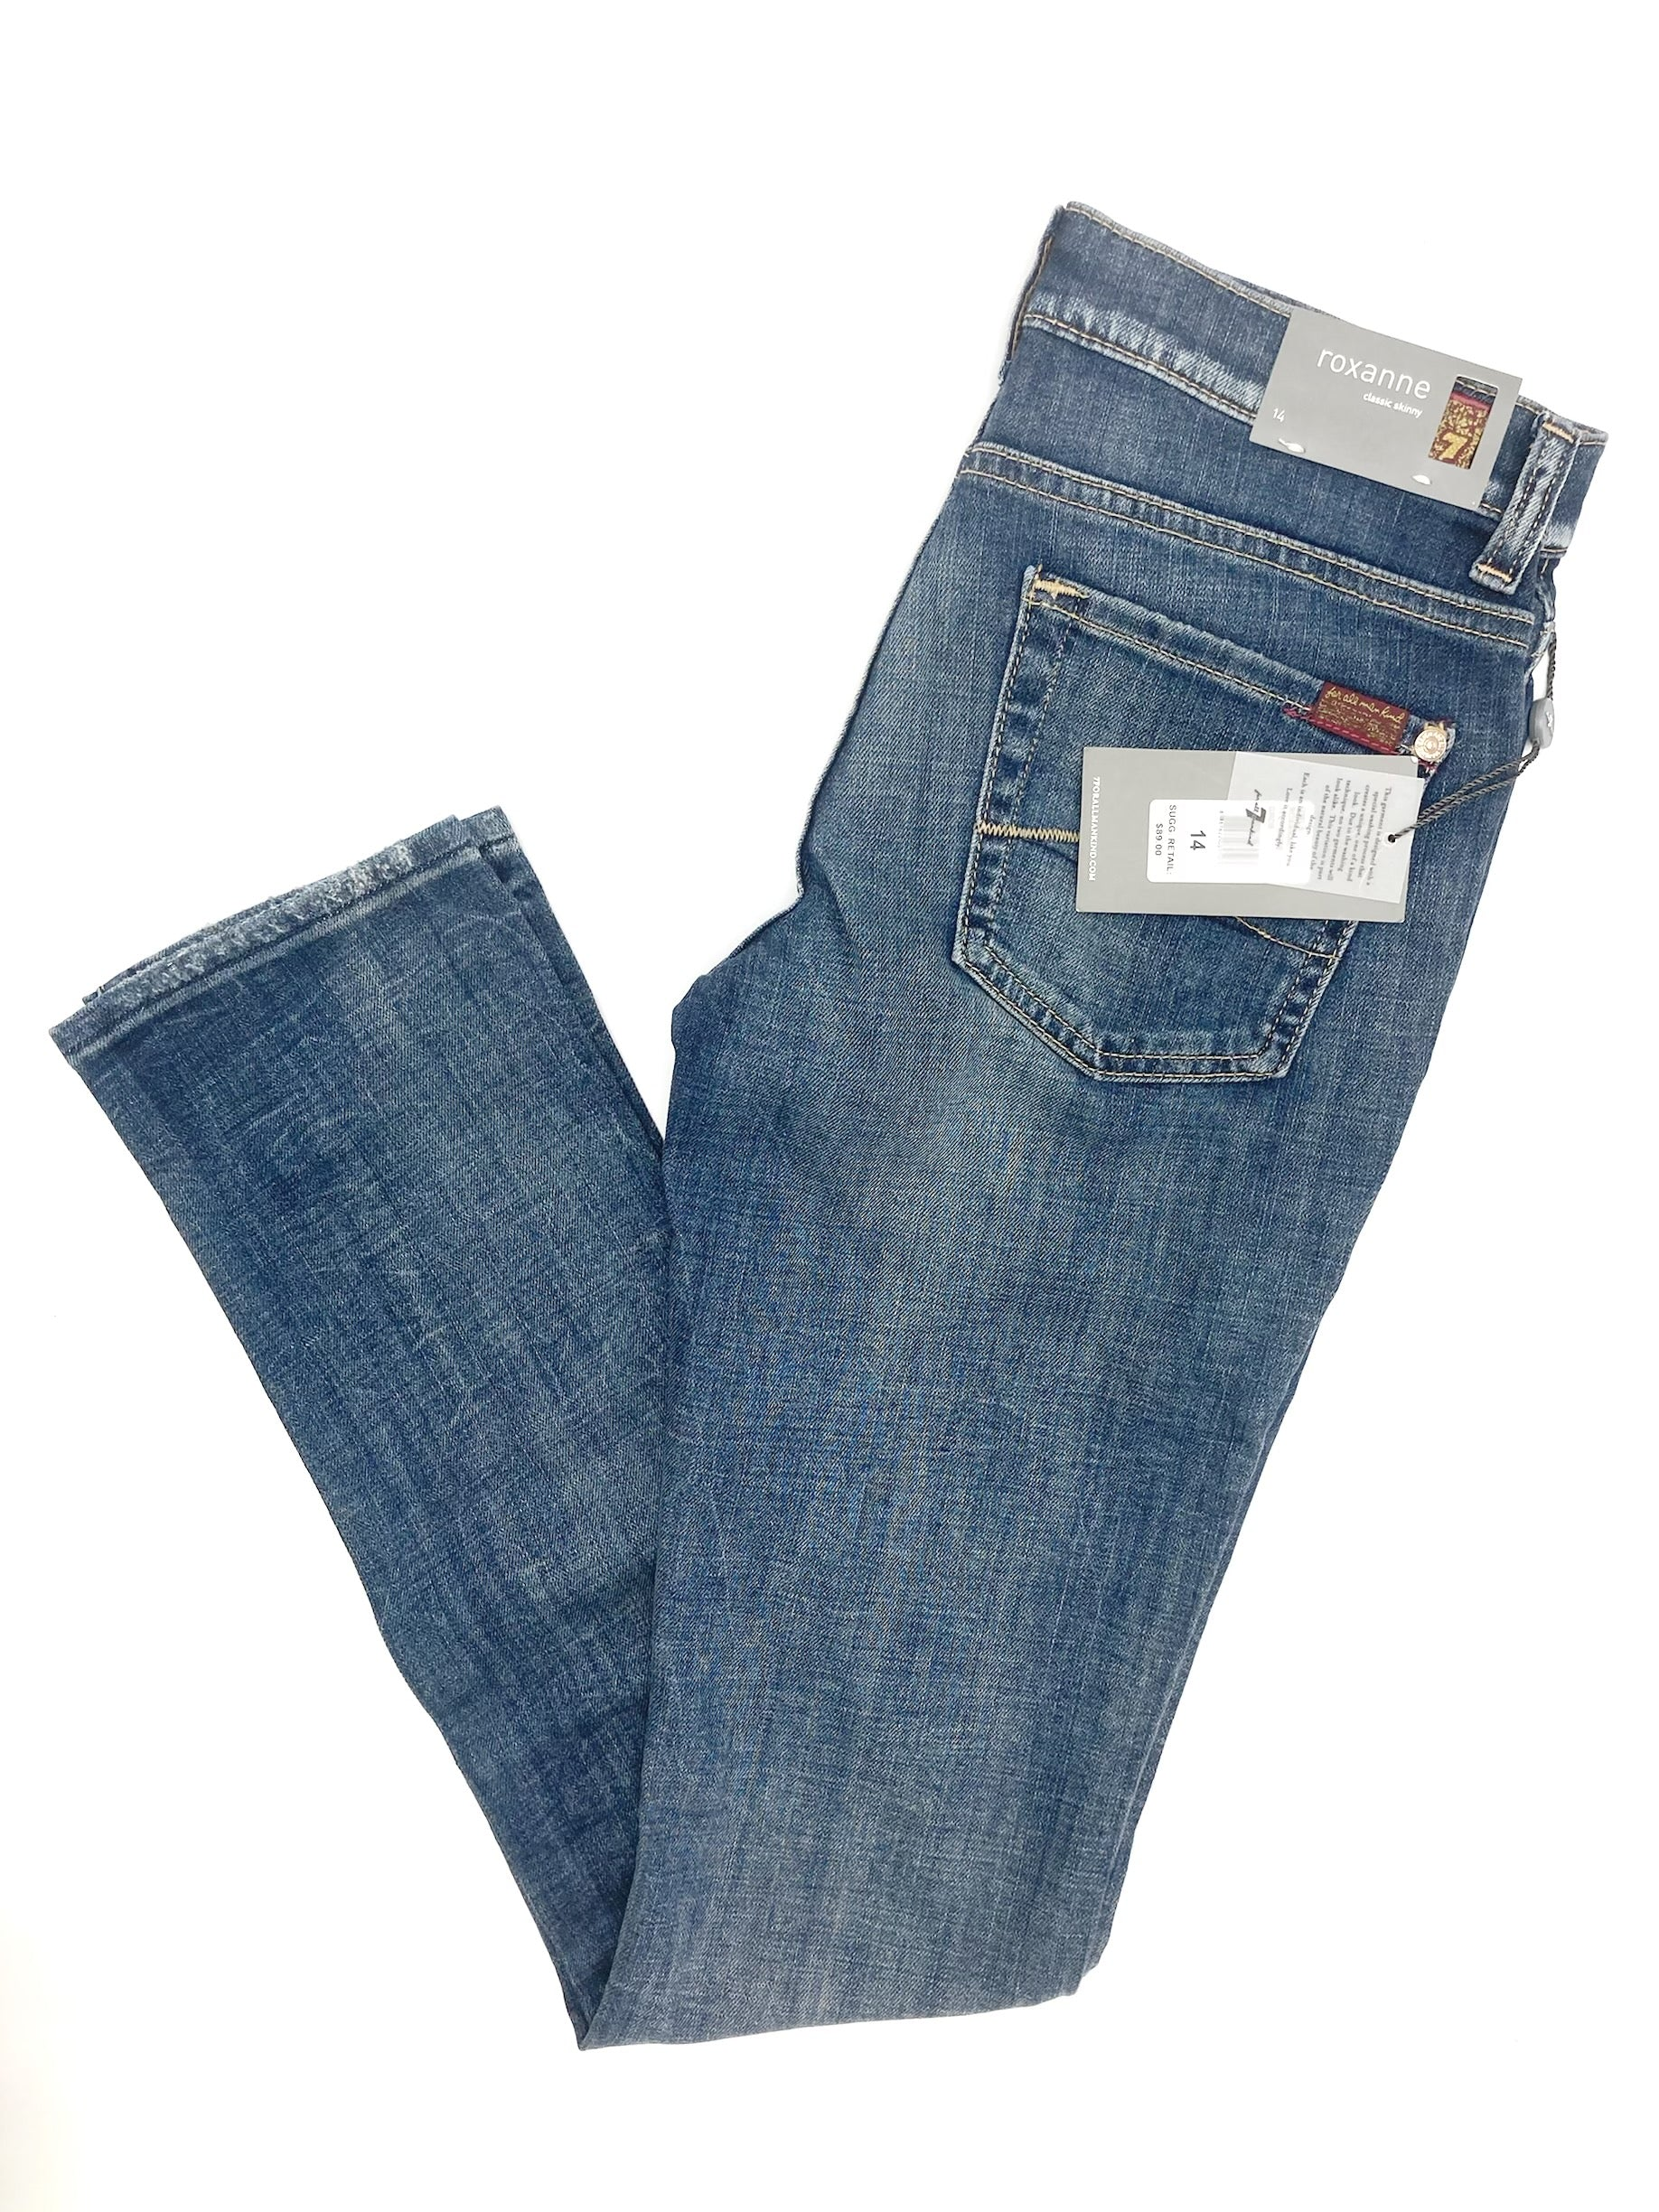 7 for all Mankind Roxanne skinny jeans - 14 NWT